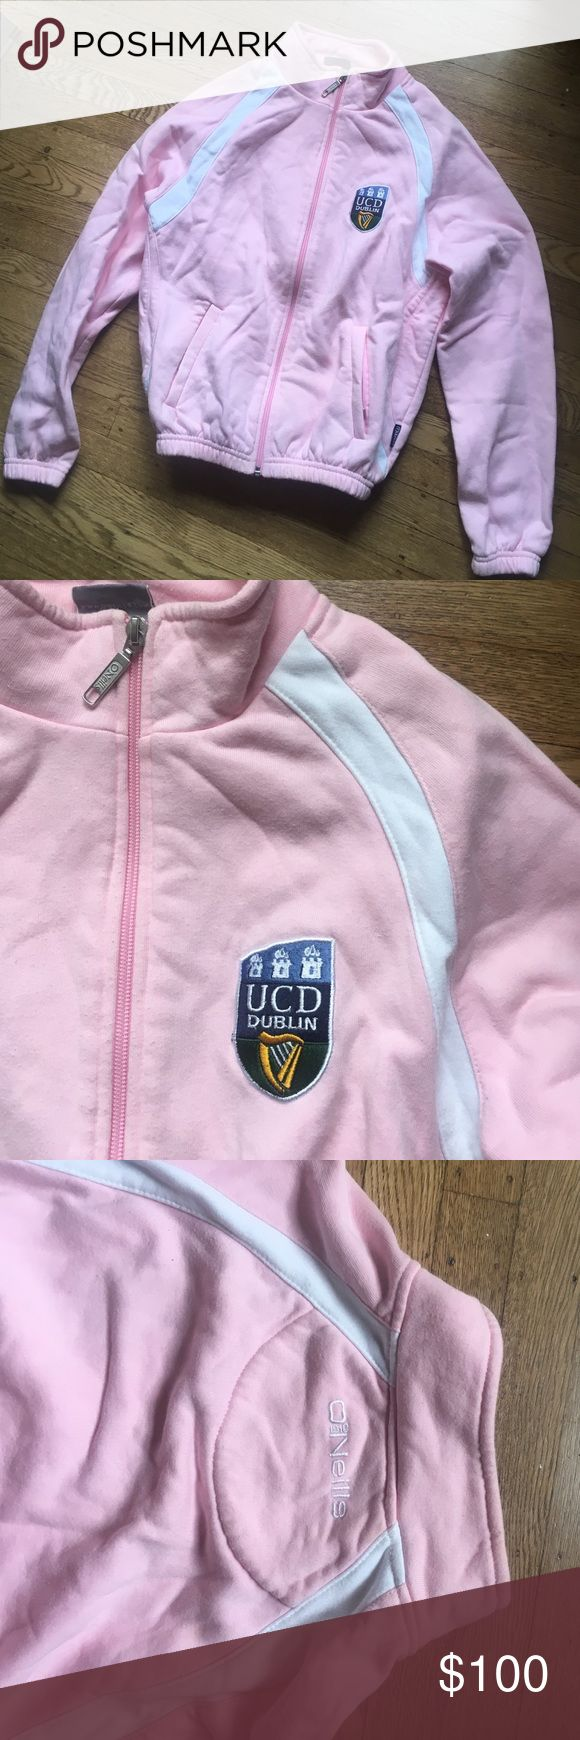 University College Dublin UCD pink track fleece Only worn a few times - I bought this when I studied in Dublin in college Jackets & Coats Utility Jackets